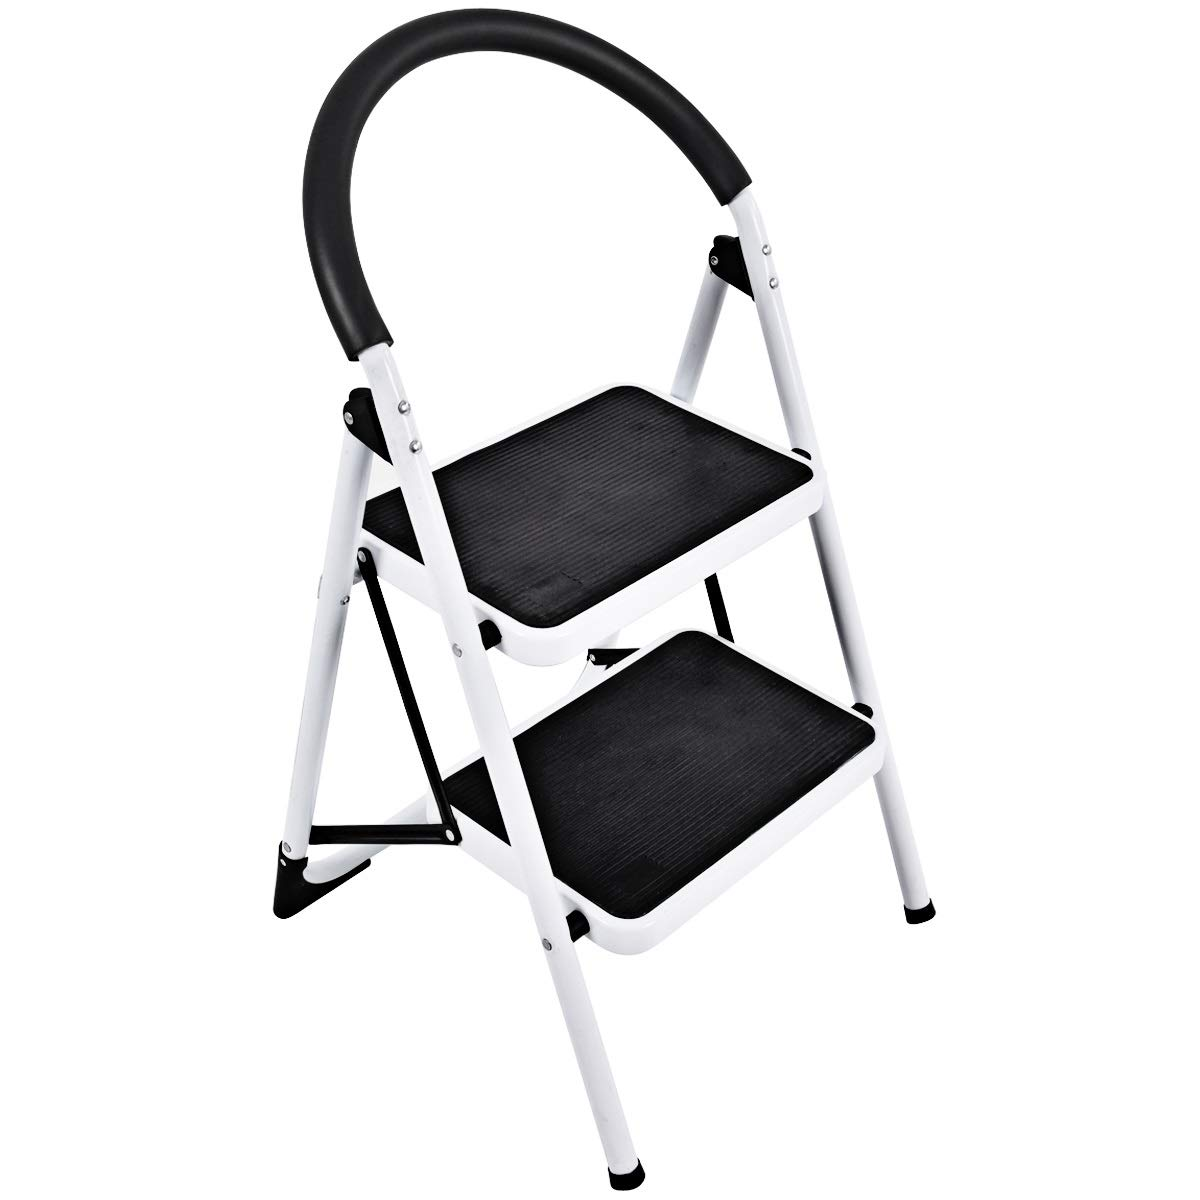 Remarkable Goplus Step Ladder Heavy Duty Folding 2 Step Ladder Step Stool With Handgrip And Wide Anti Slip Platform Sturdy Hd Construction 330Lbs Capacity Pabps2019 Chair Design Images Pabps2019Com